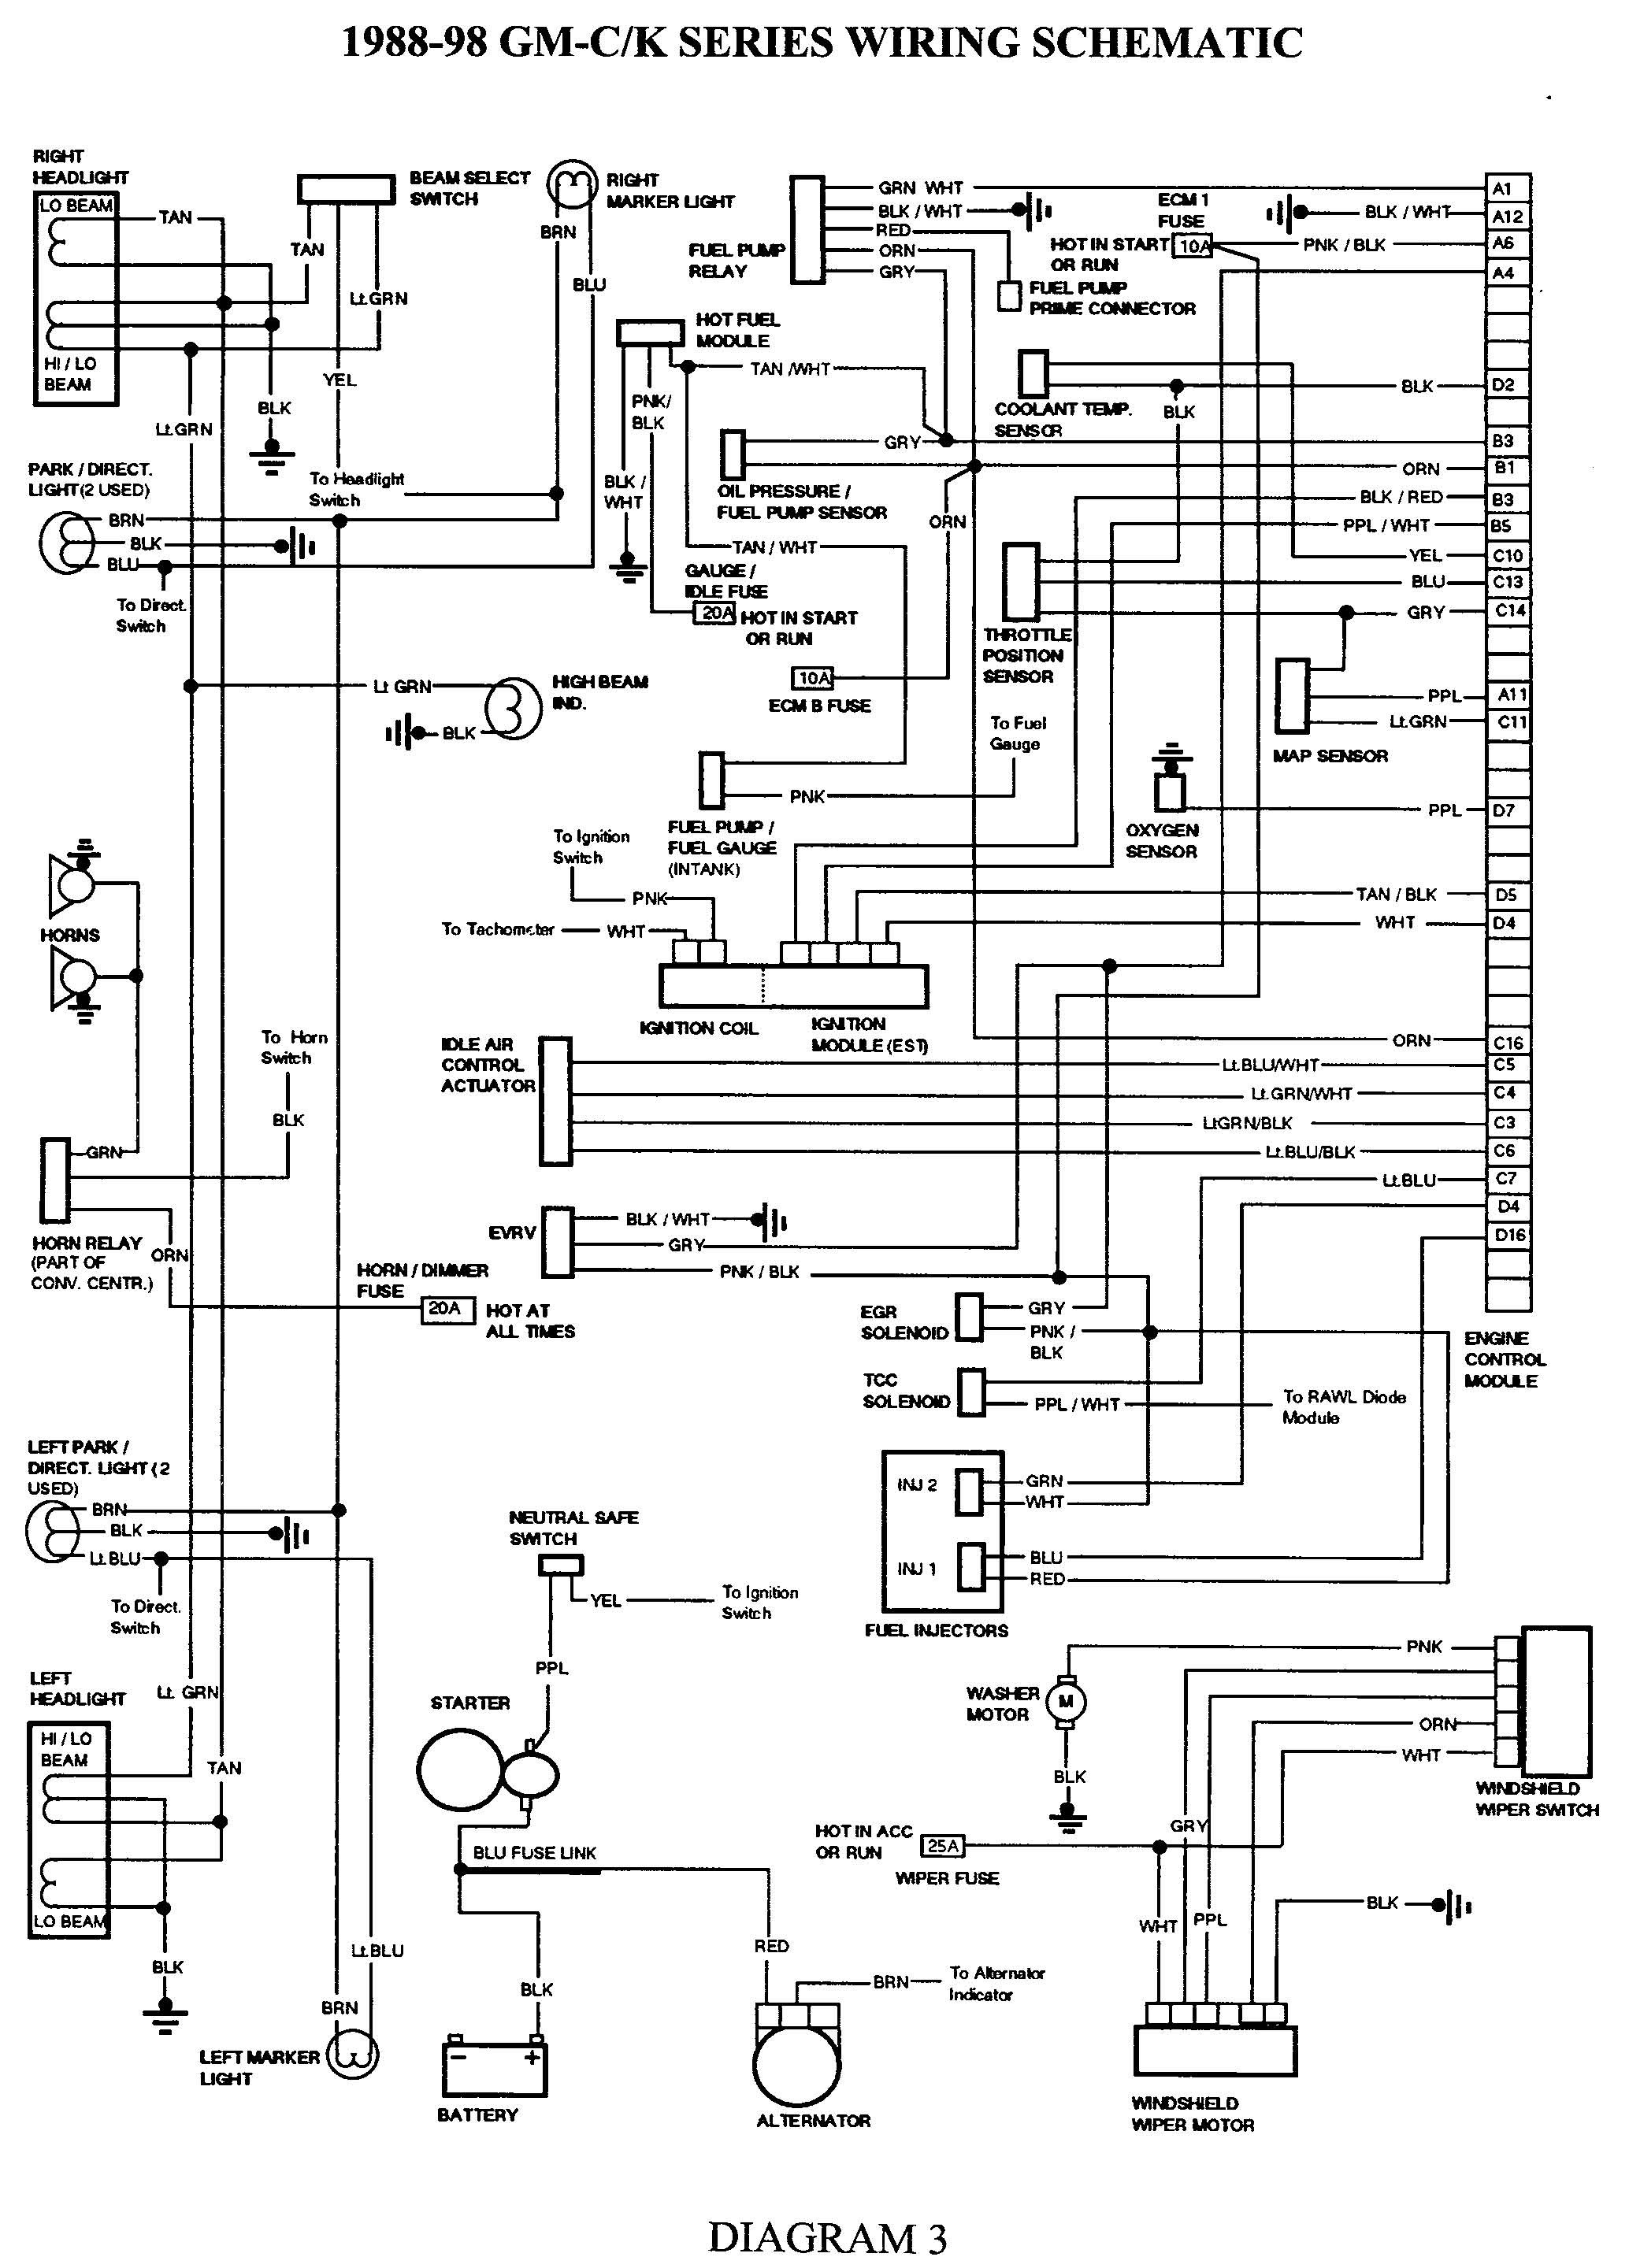 1993 gmc sierra headlight wiring diagram 2008 gmc engine diagram | wiring diagram 2010 gmc sierra headlight wiring diagram